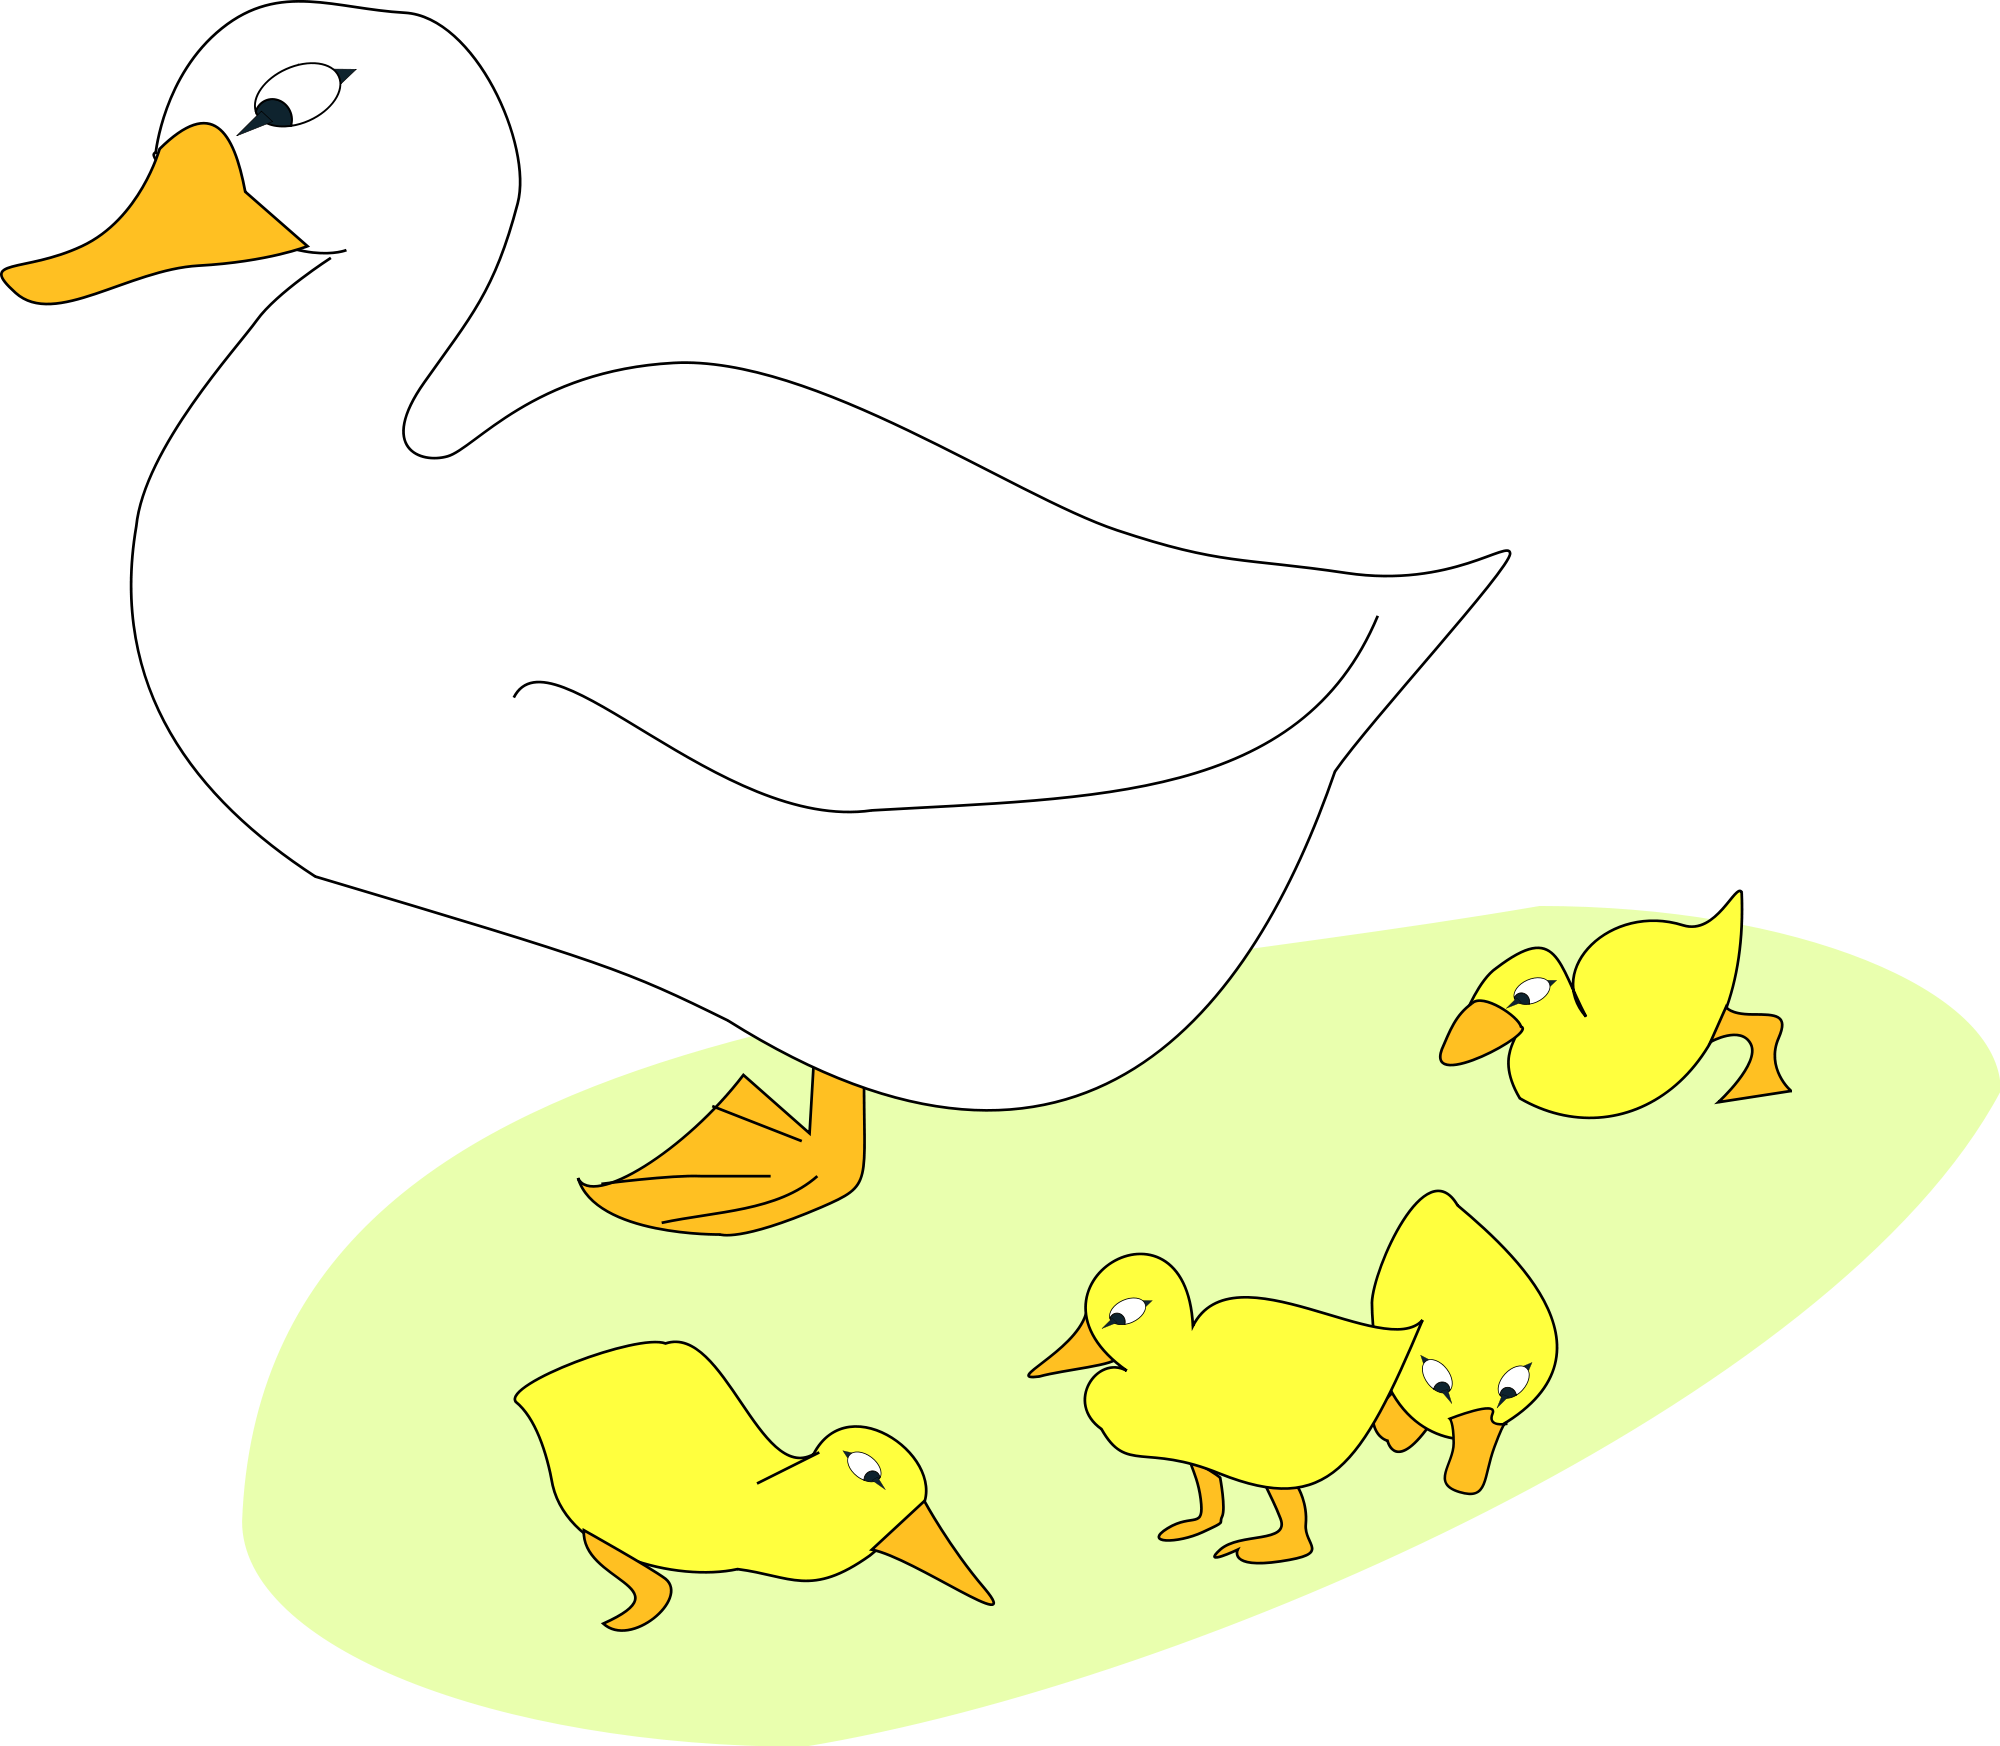 File geese with ducklings. Duckling clipart goslings